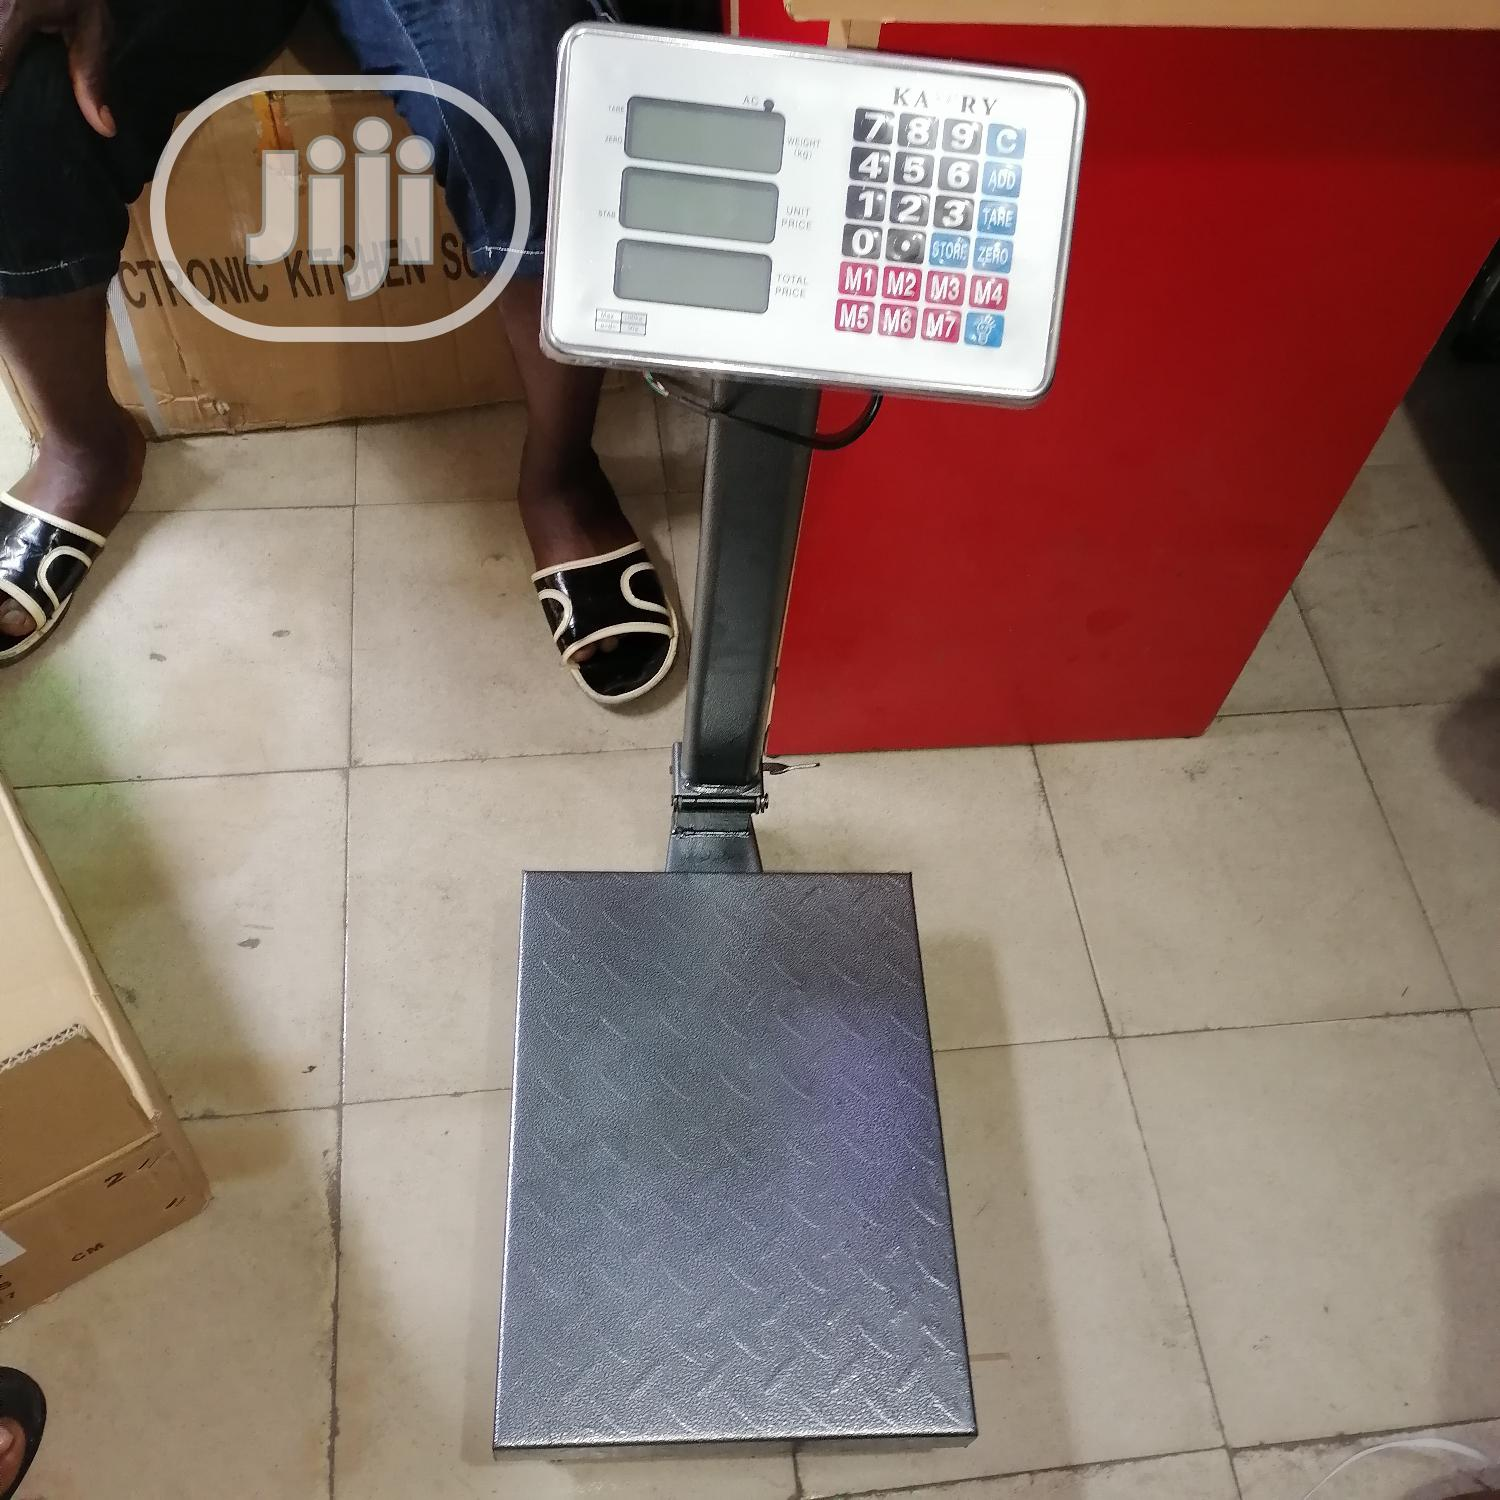 100kg Digital Scale Kamry   Store Equipment for sale in Ojo, Lagos State, Nigeria